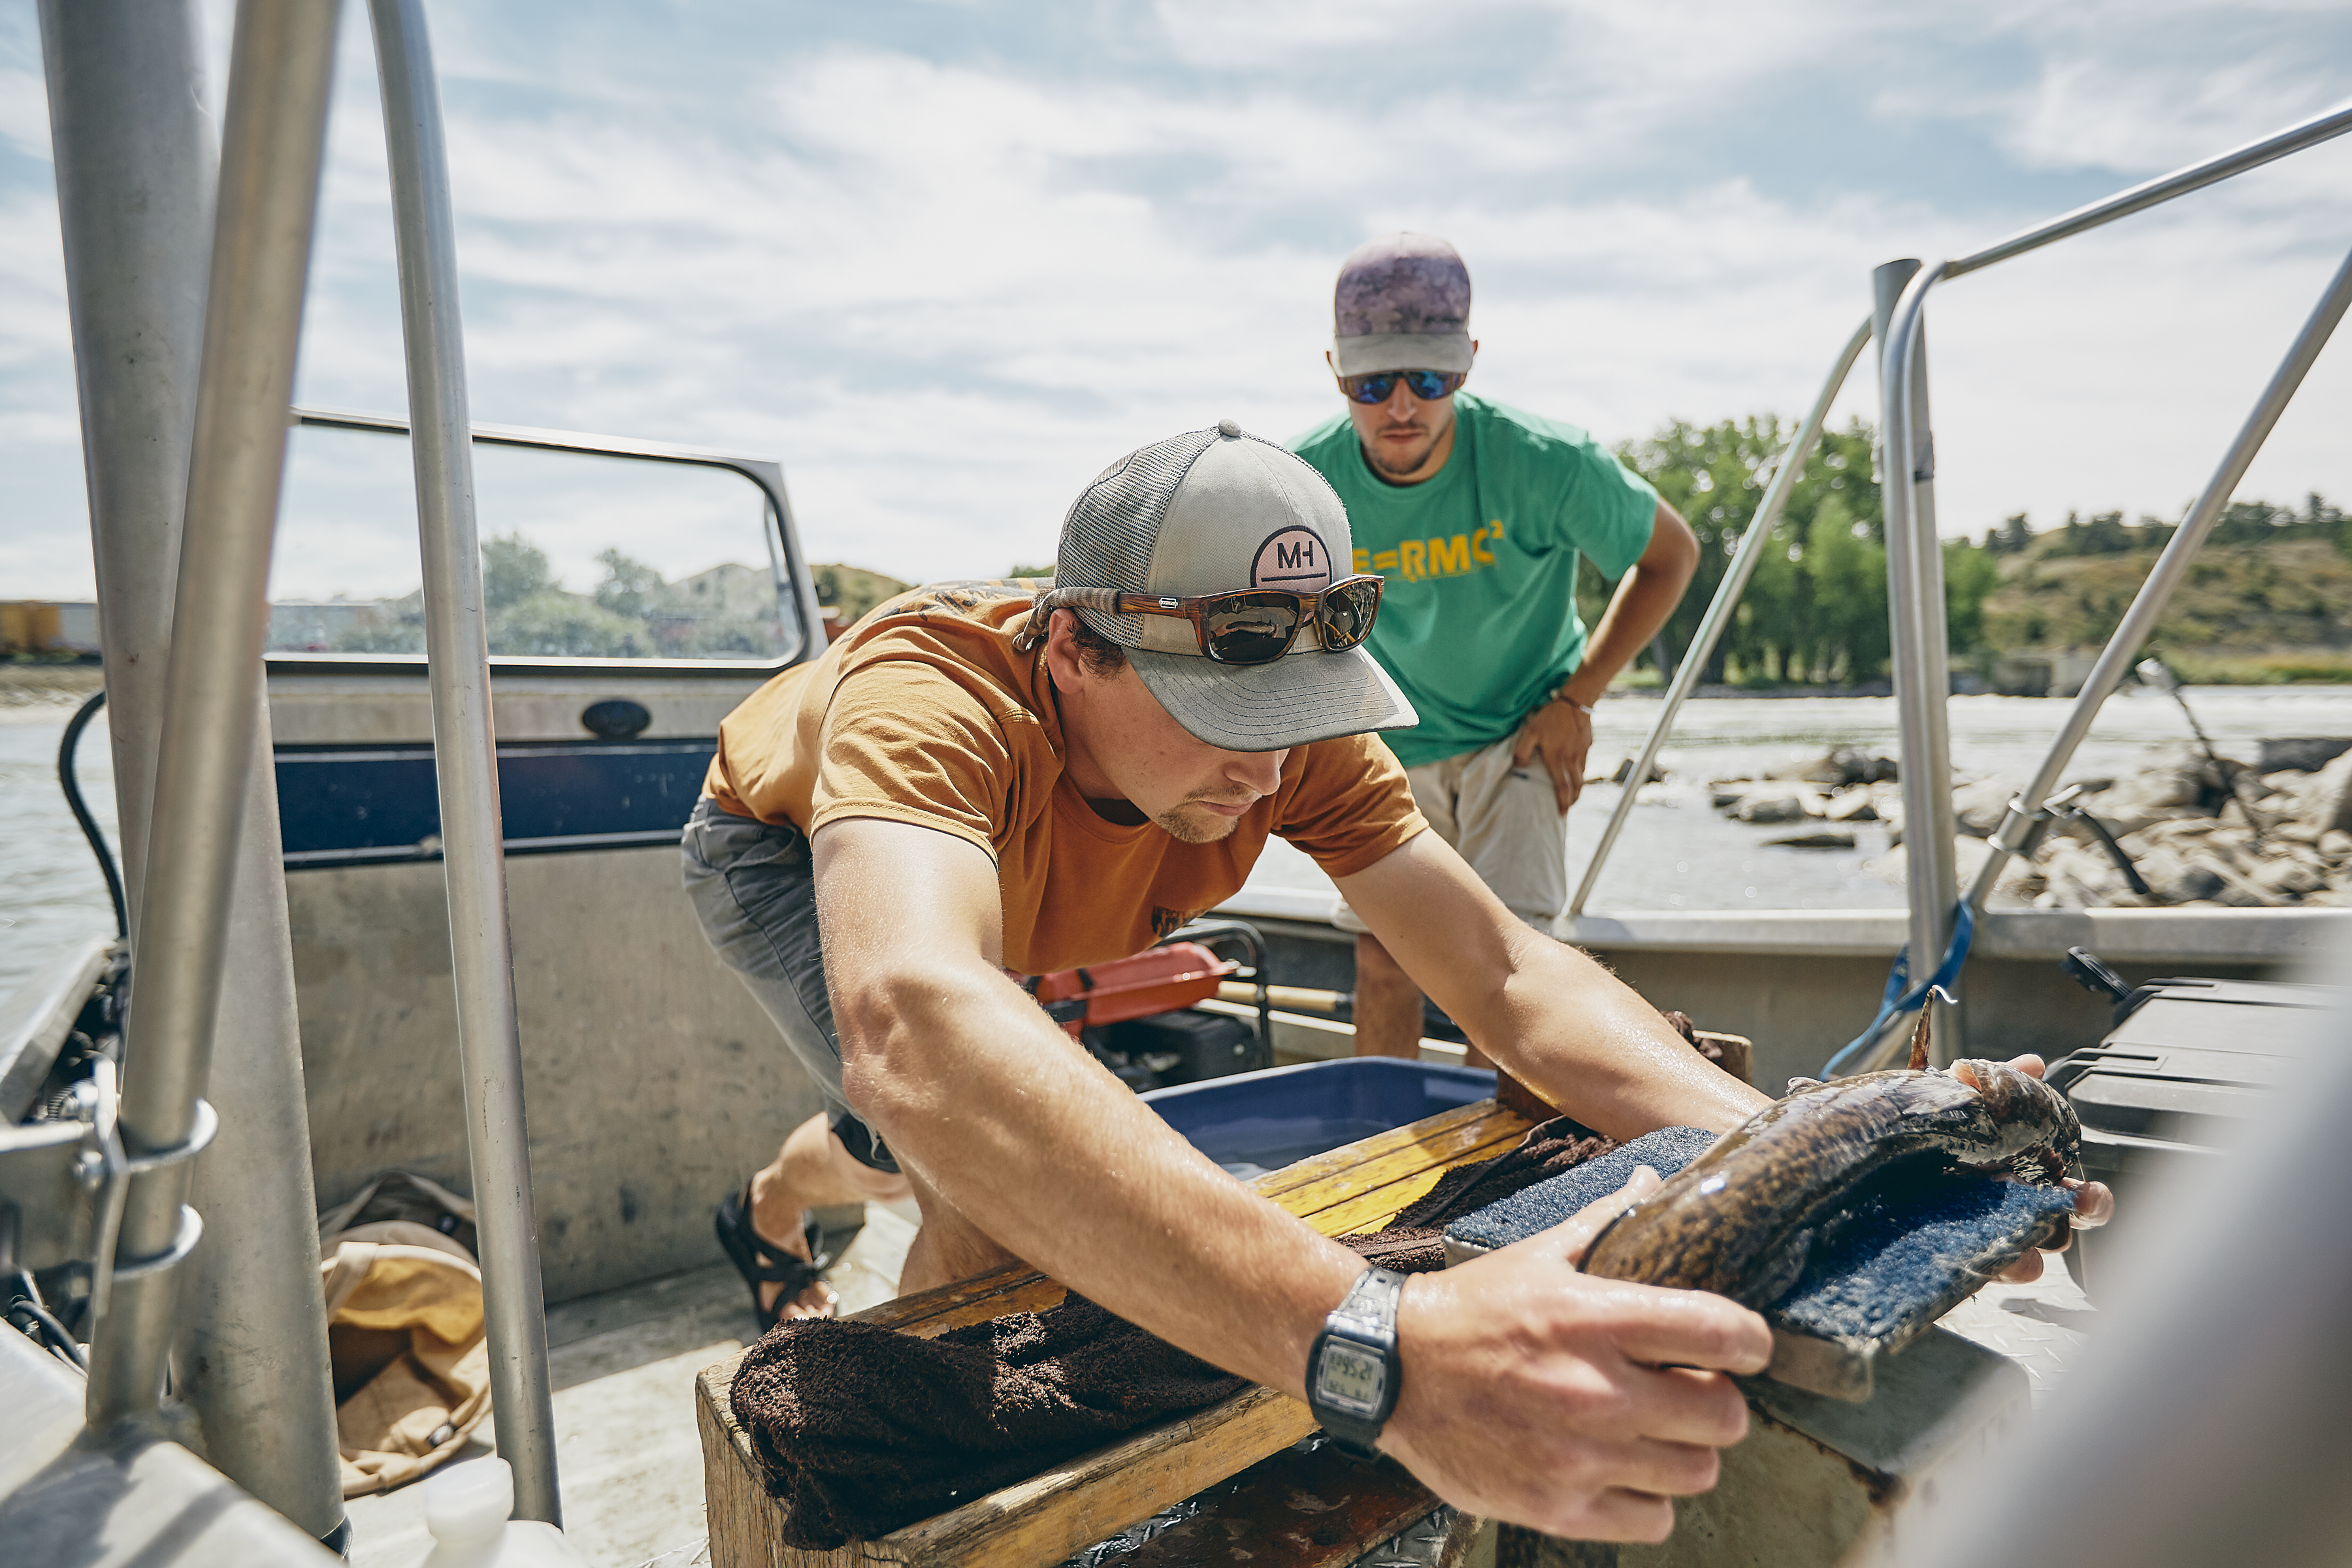 Ian weighs a burbot on the boat at the Huntley Fish Bypass on the Yellowstone River